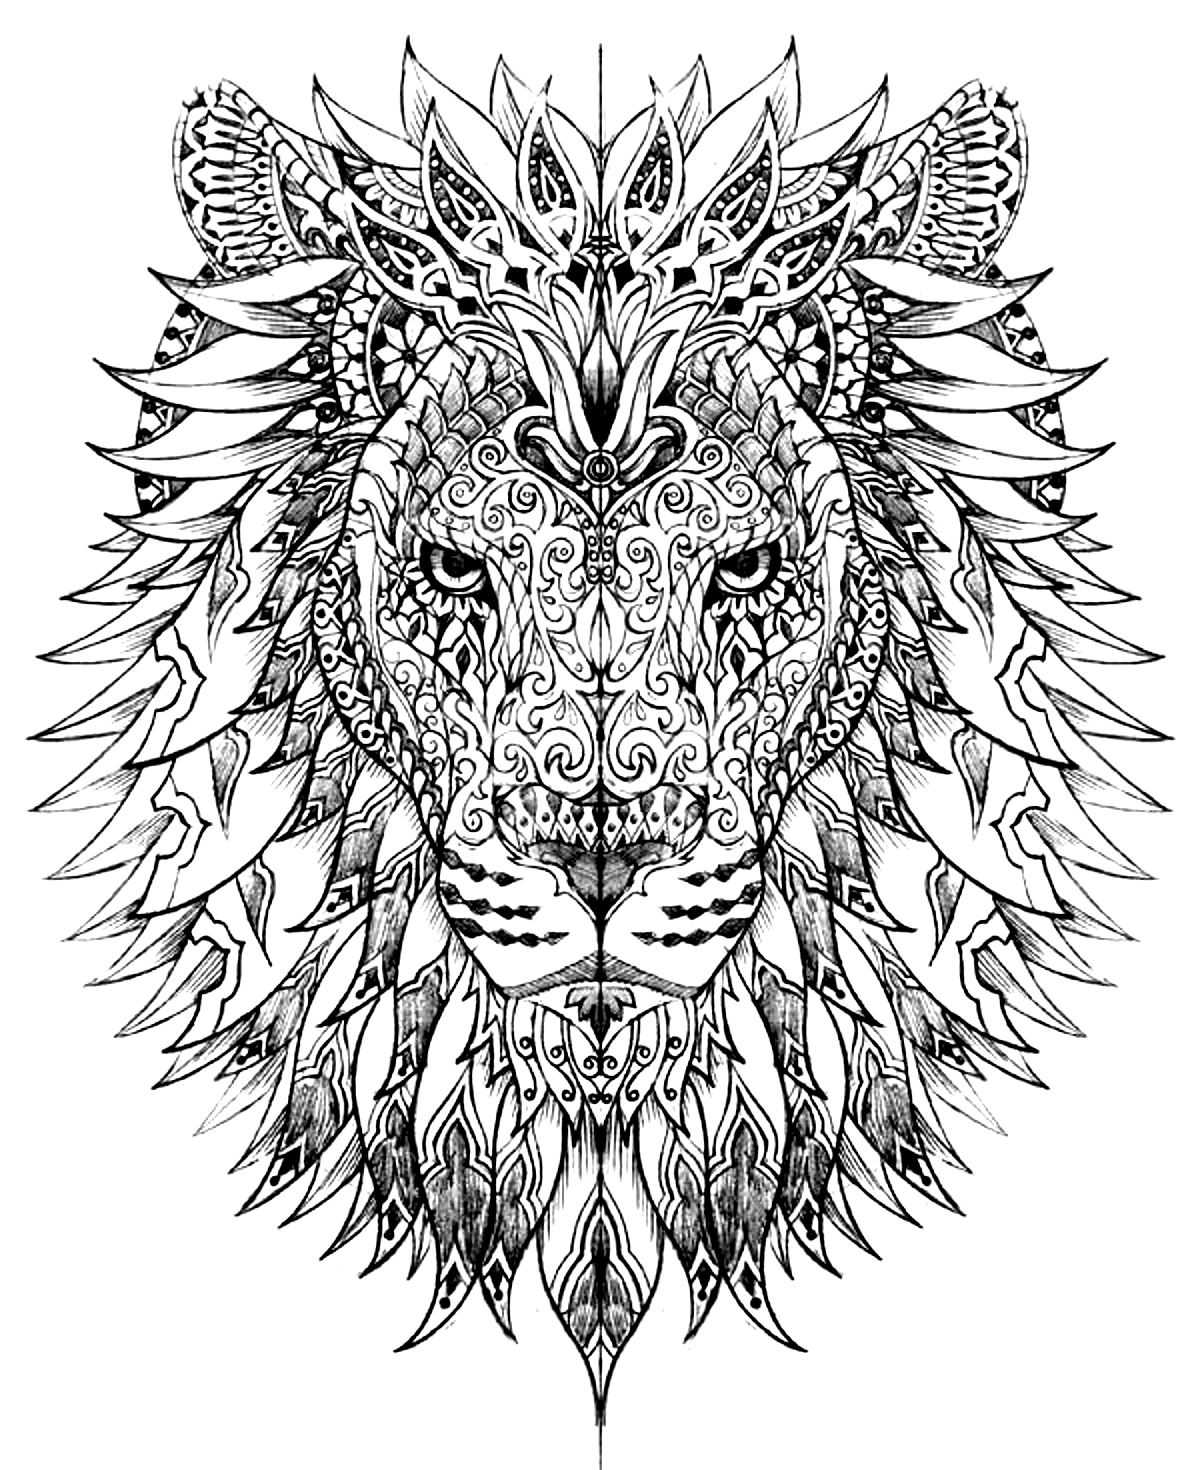 Lion head - Lions - Coloring pages for adults